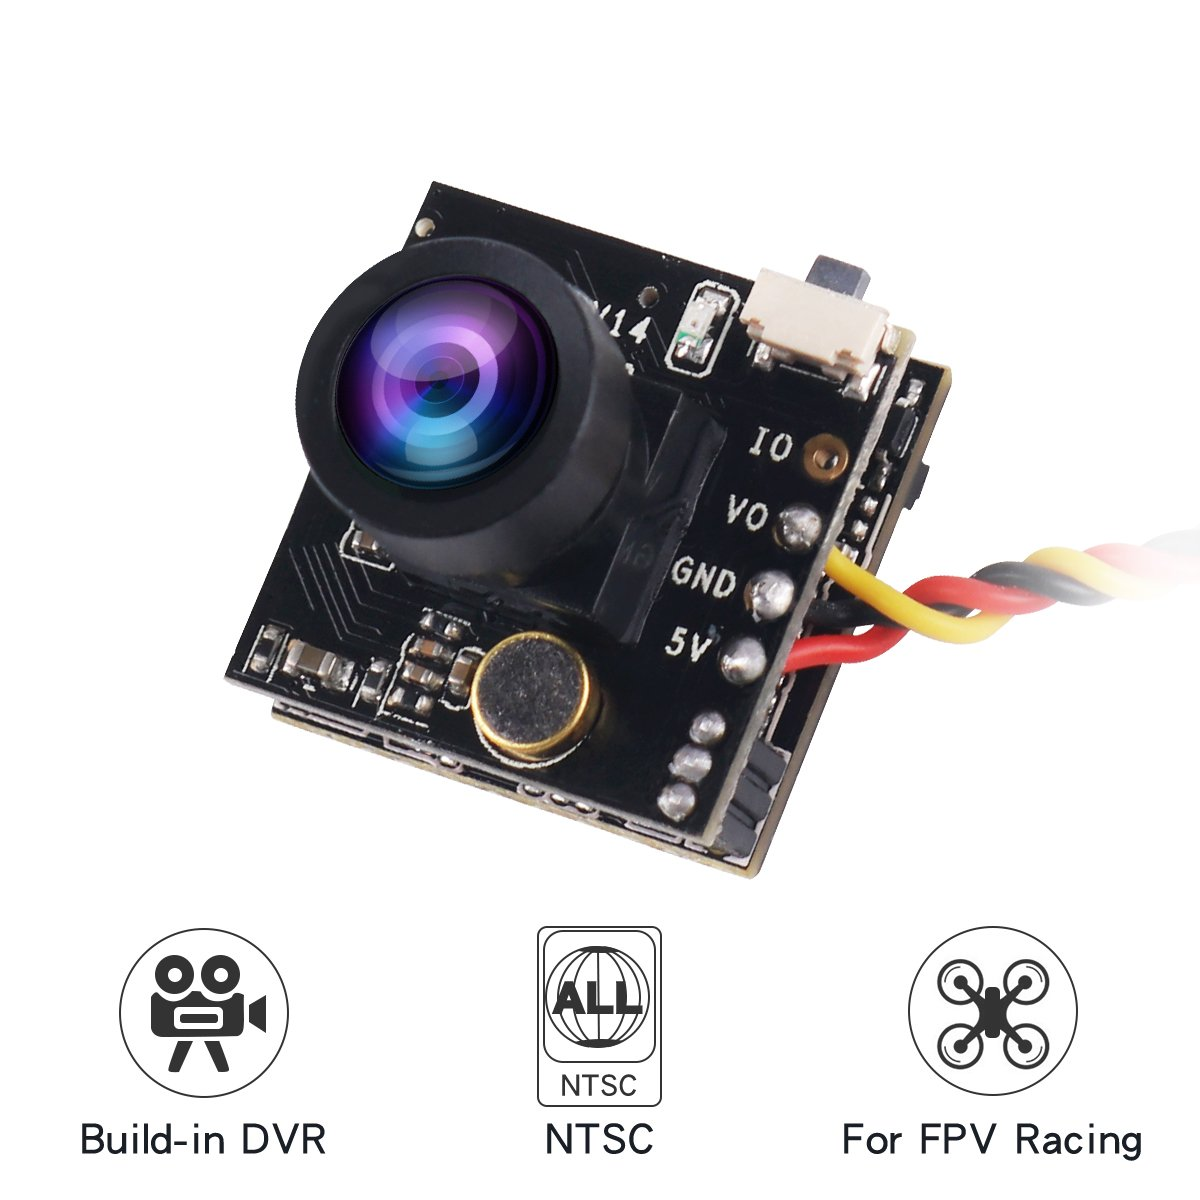 Crazepony FPV DVR Camera Turbowing CYCLOPS3 V3 720P Micro Video Recording HD Camera Mini Video Audio Recorder 175 Degree NTSC FPV Camera for FPV Racing Drone Multicopter Quadcopter